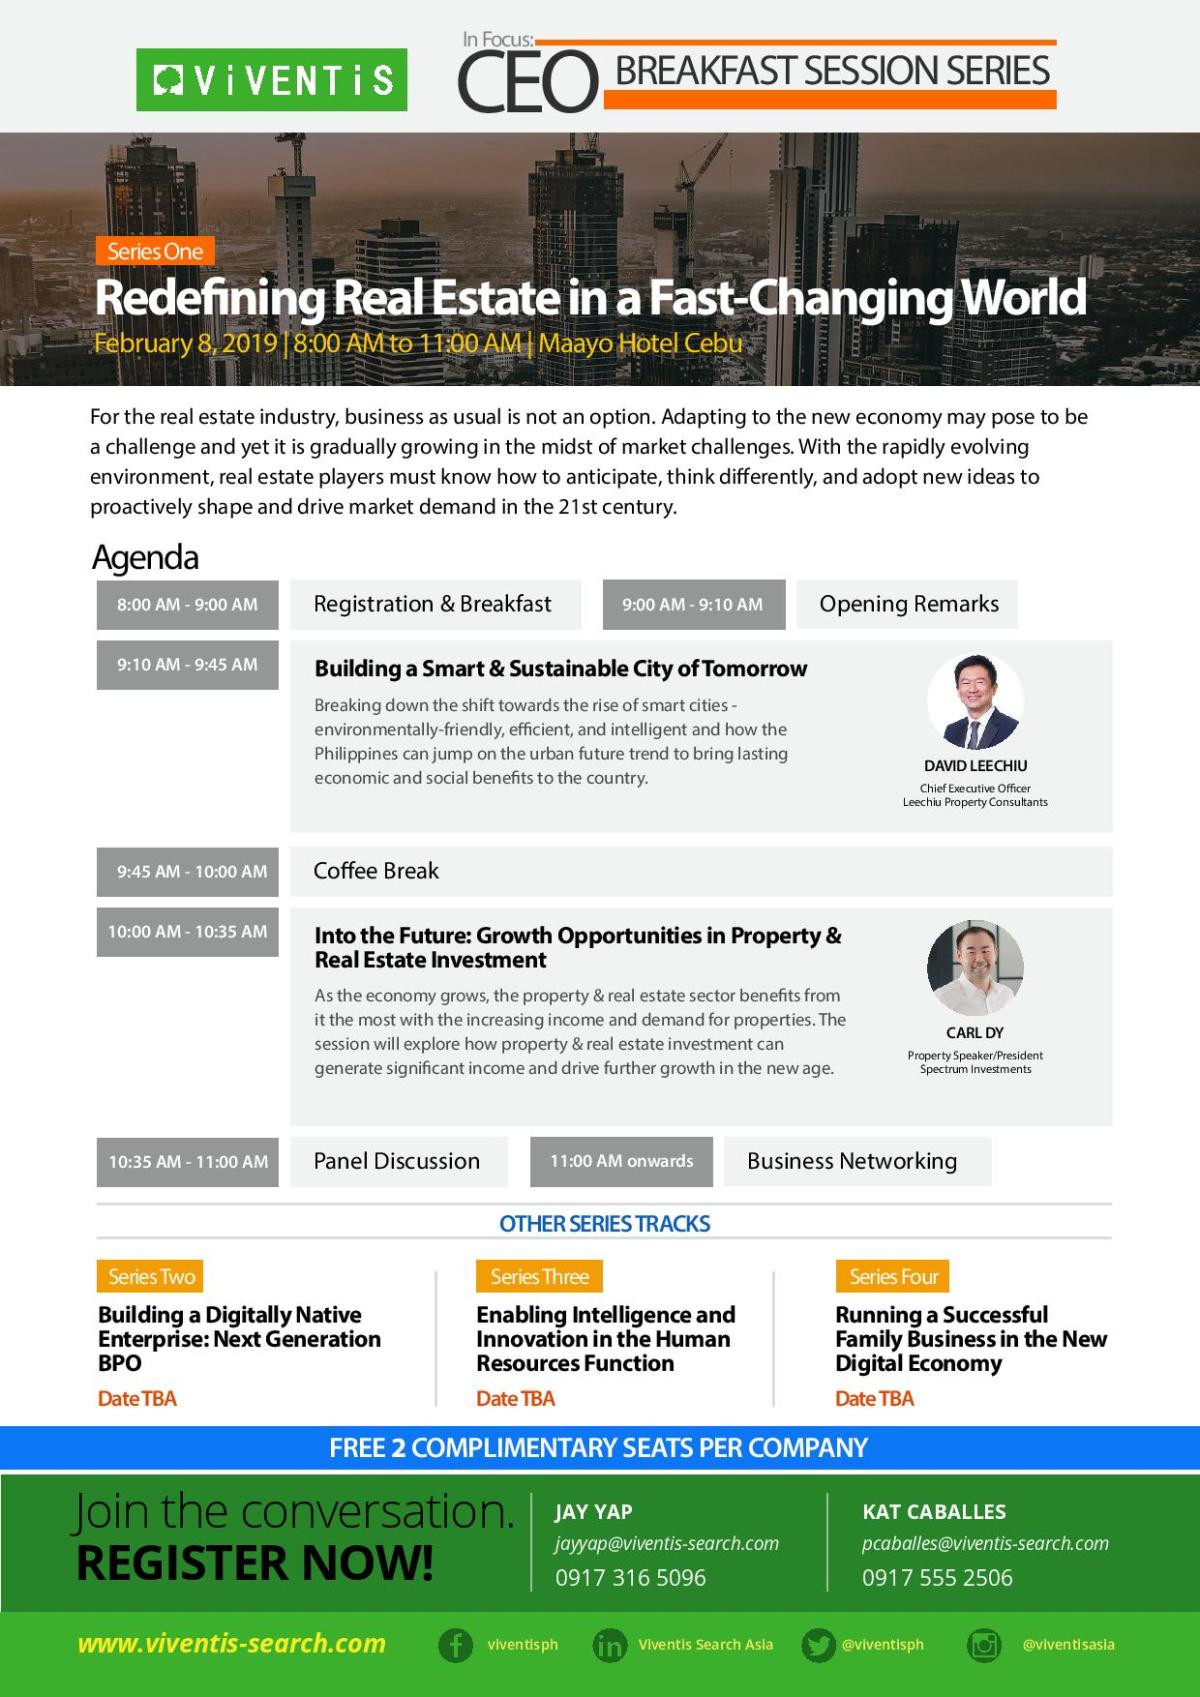 in focus session, redefining real estate in a fast-changing world property guru carl dy spectrum philippines property david leechiu 1